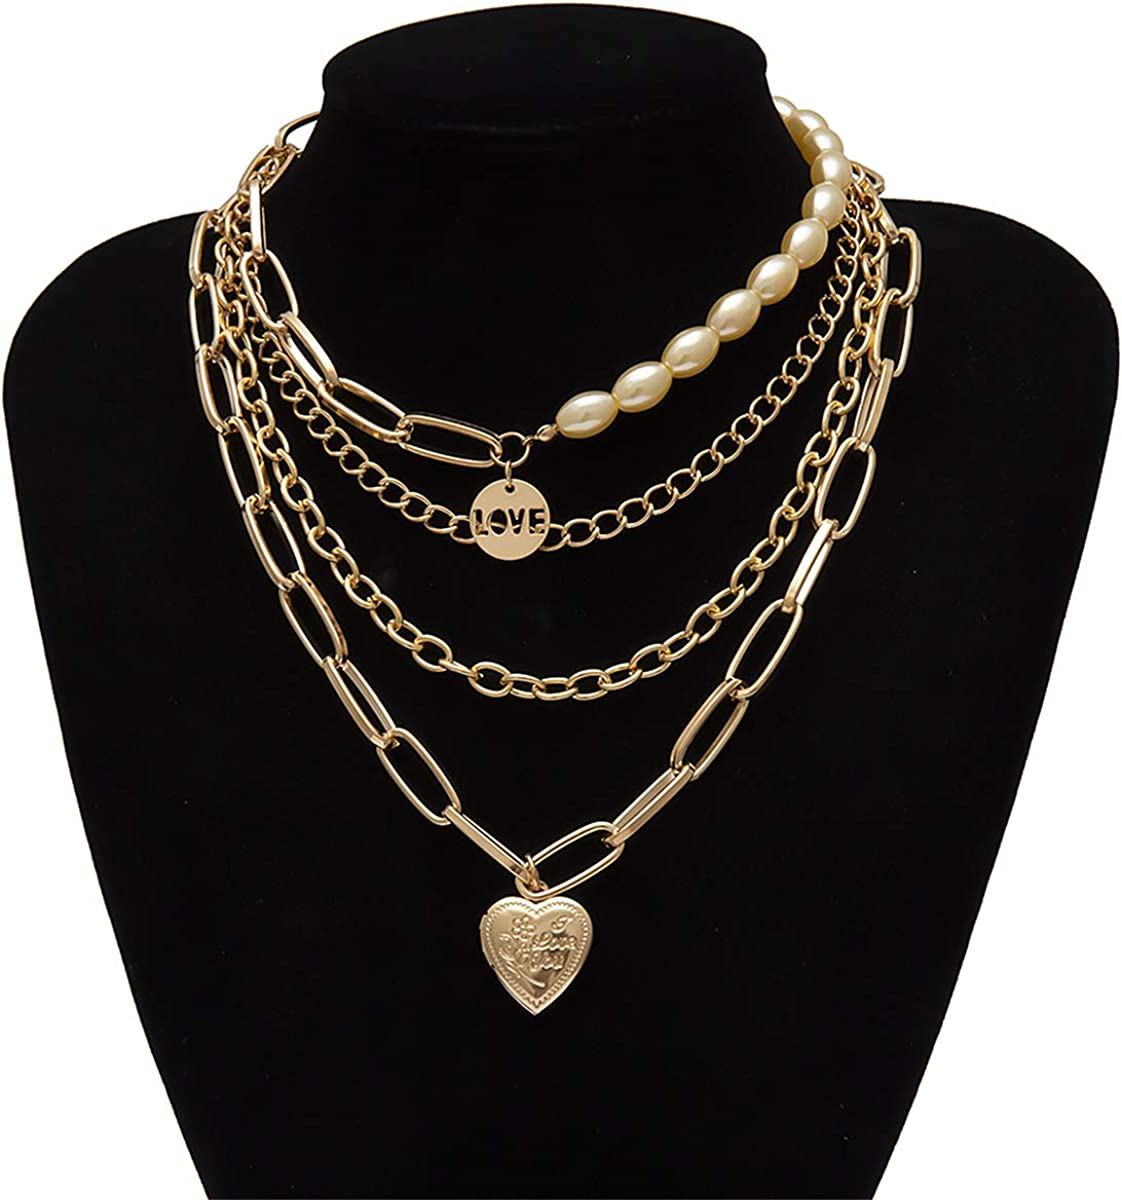 Ingemark Statement Cool Punk Chunky Chain Necklace for Women Girls Heart Shaped Photo Locket Pendant Layered Pearl Choker Necklace